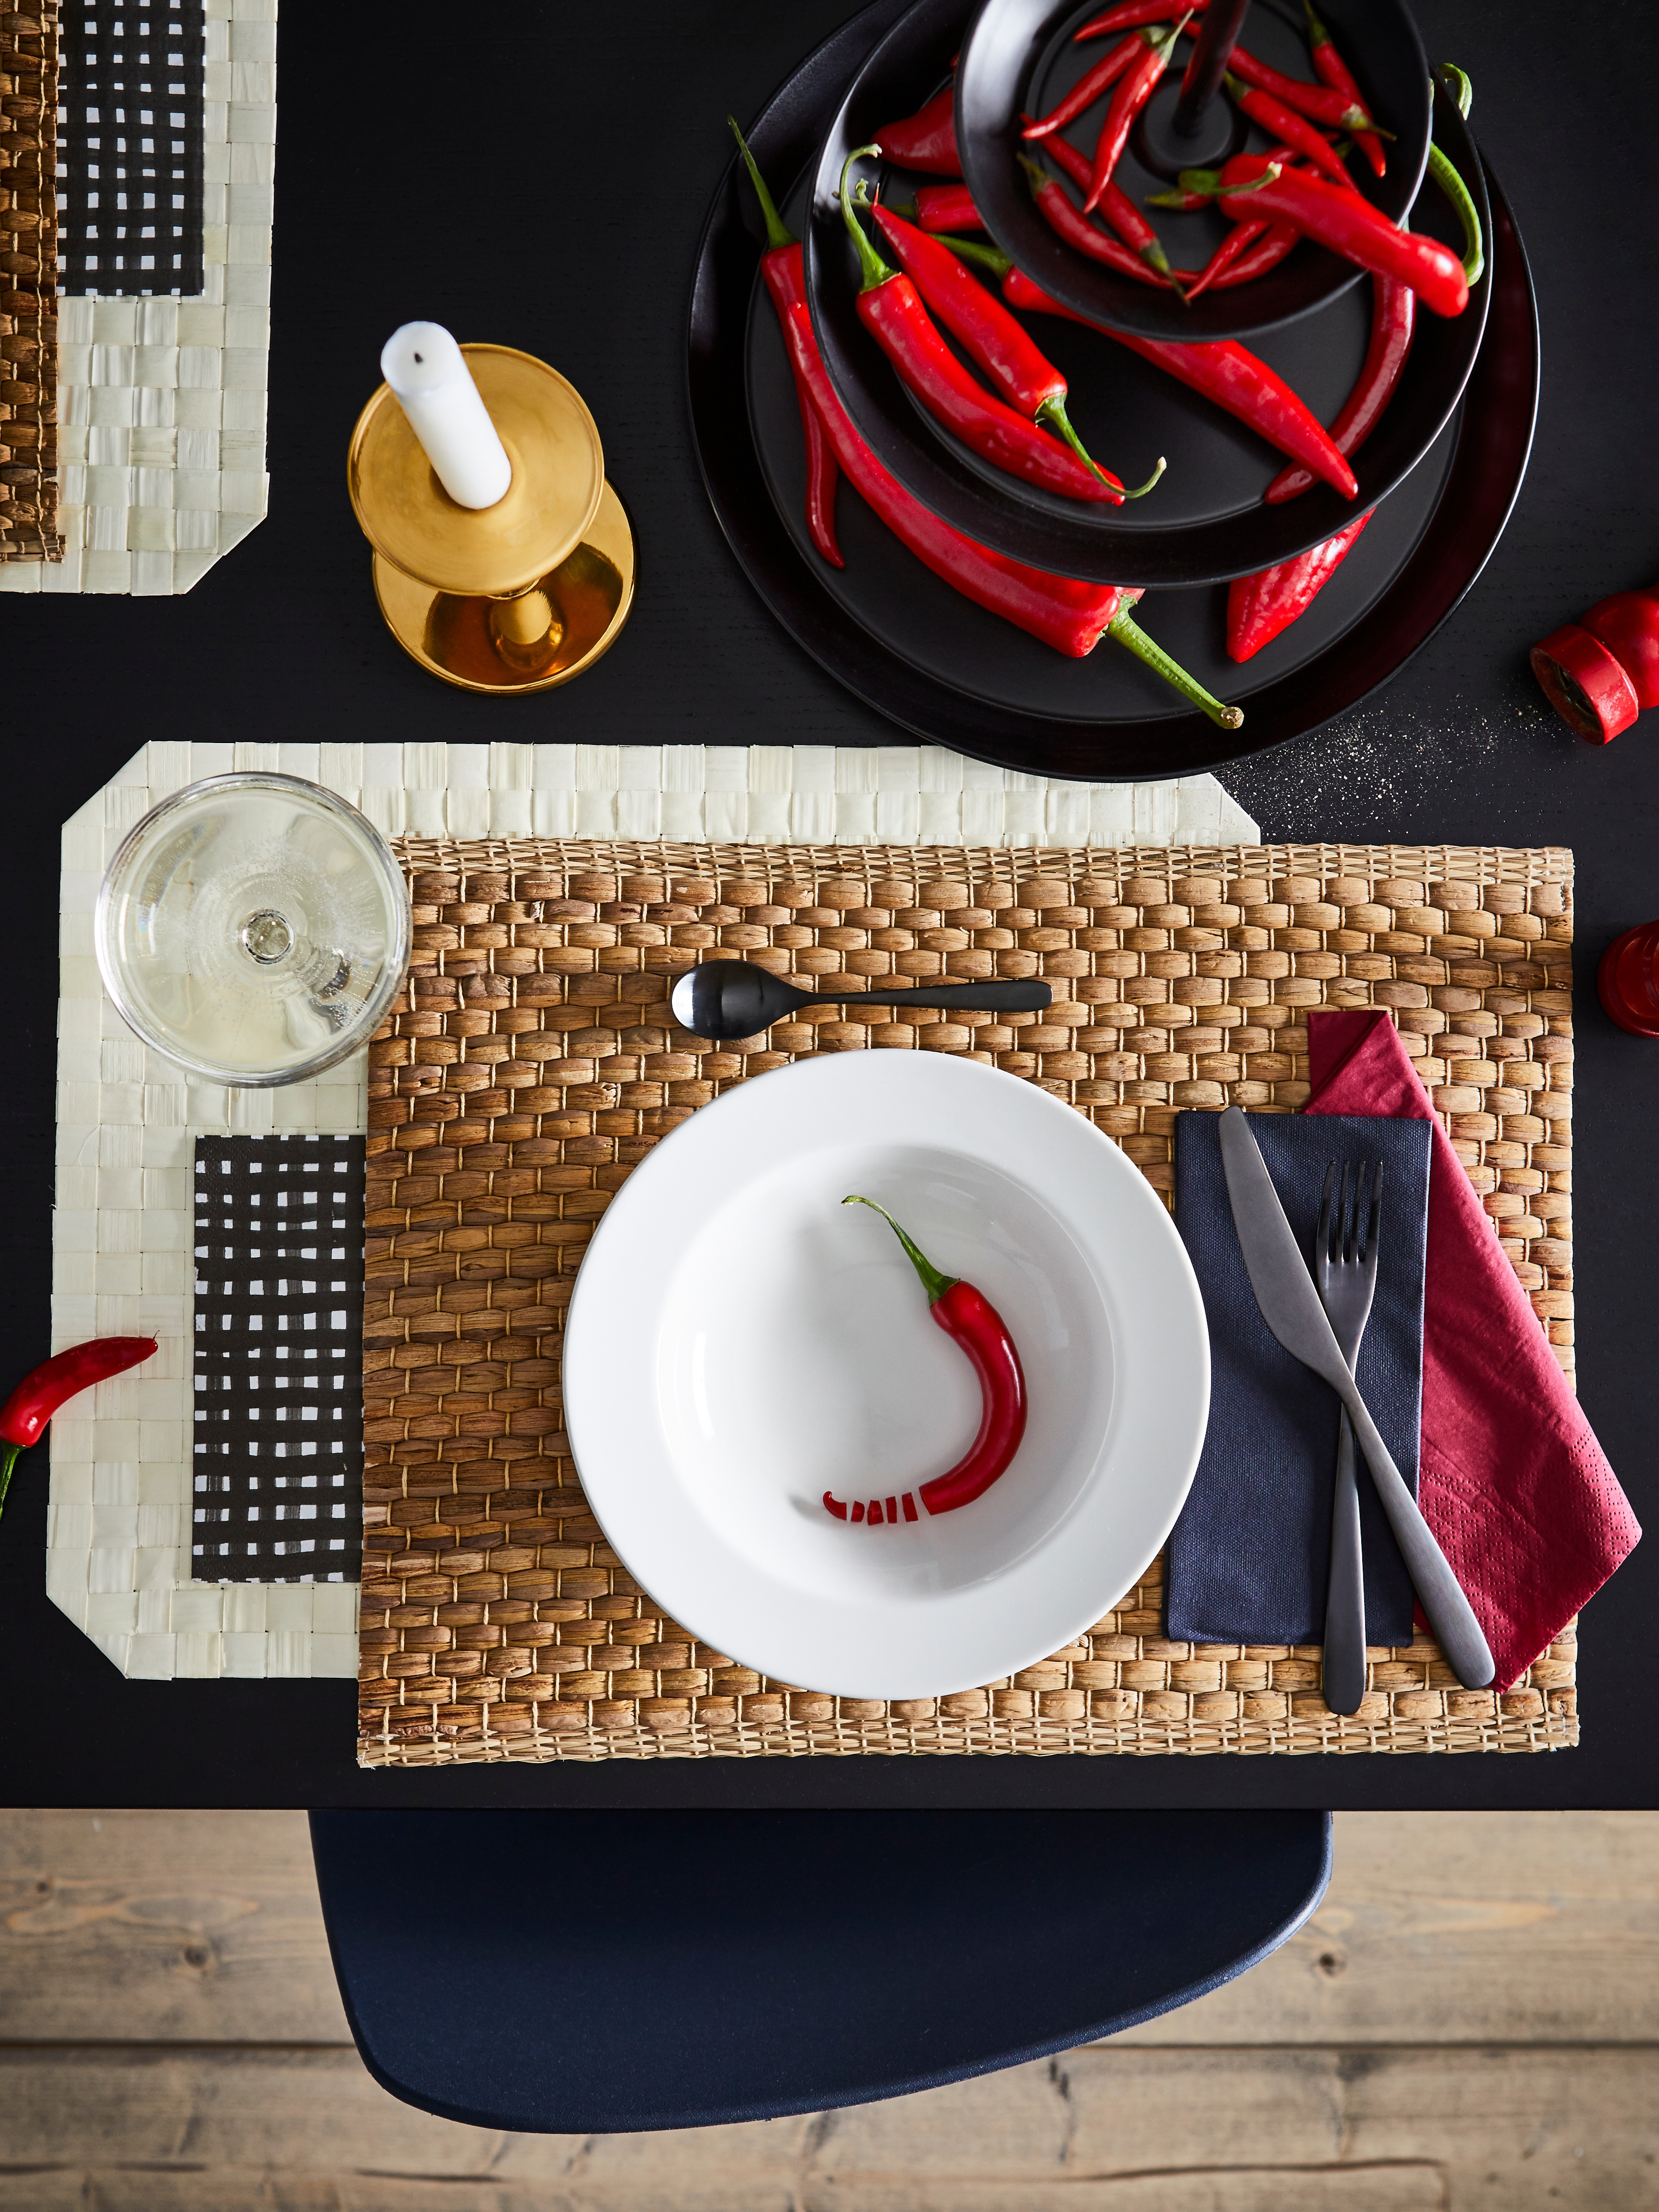 Place mat with VARDAGEN deep plate in off-white containing a red chili pepper, on a table with chilli peppers and tableware.